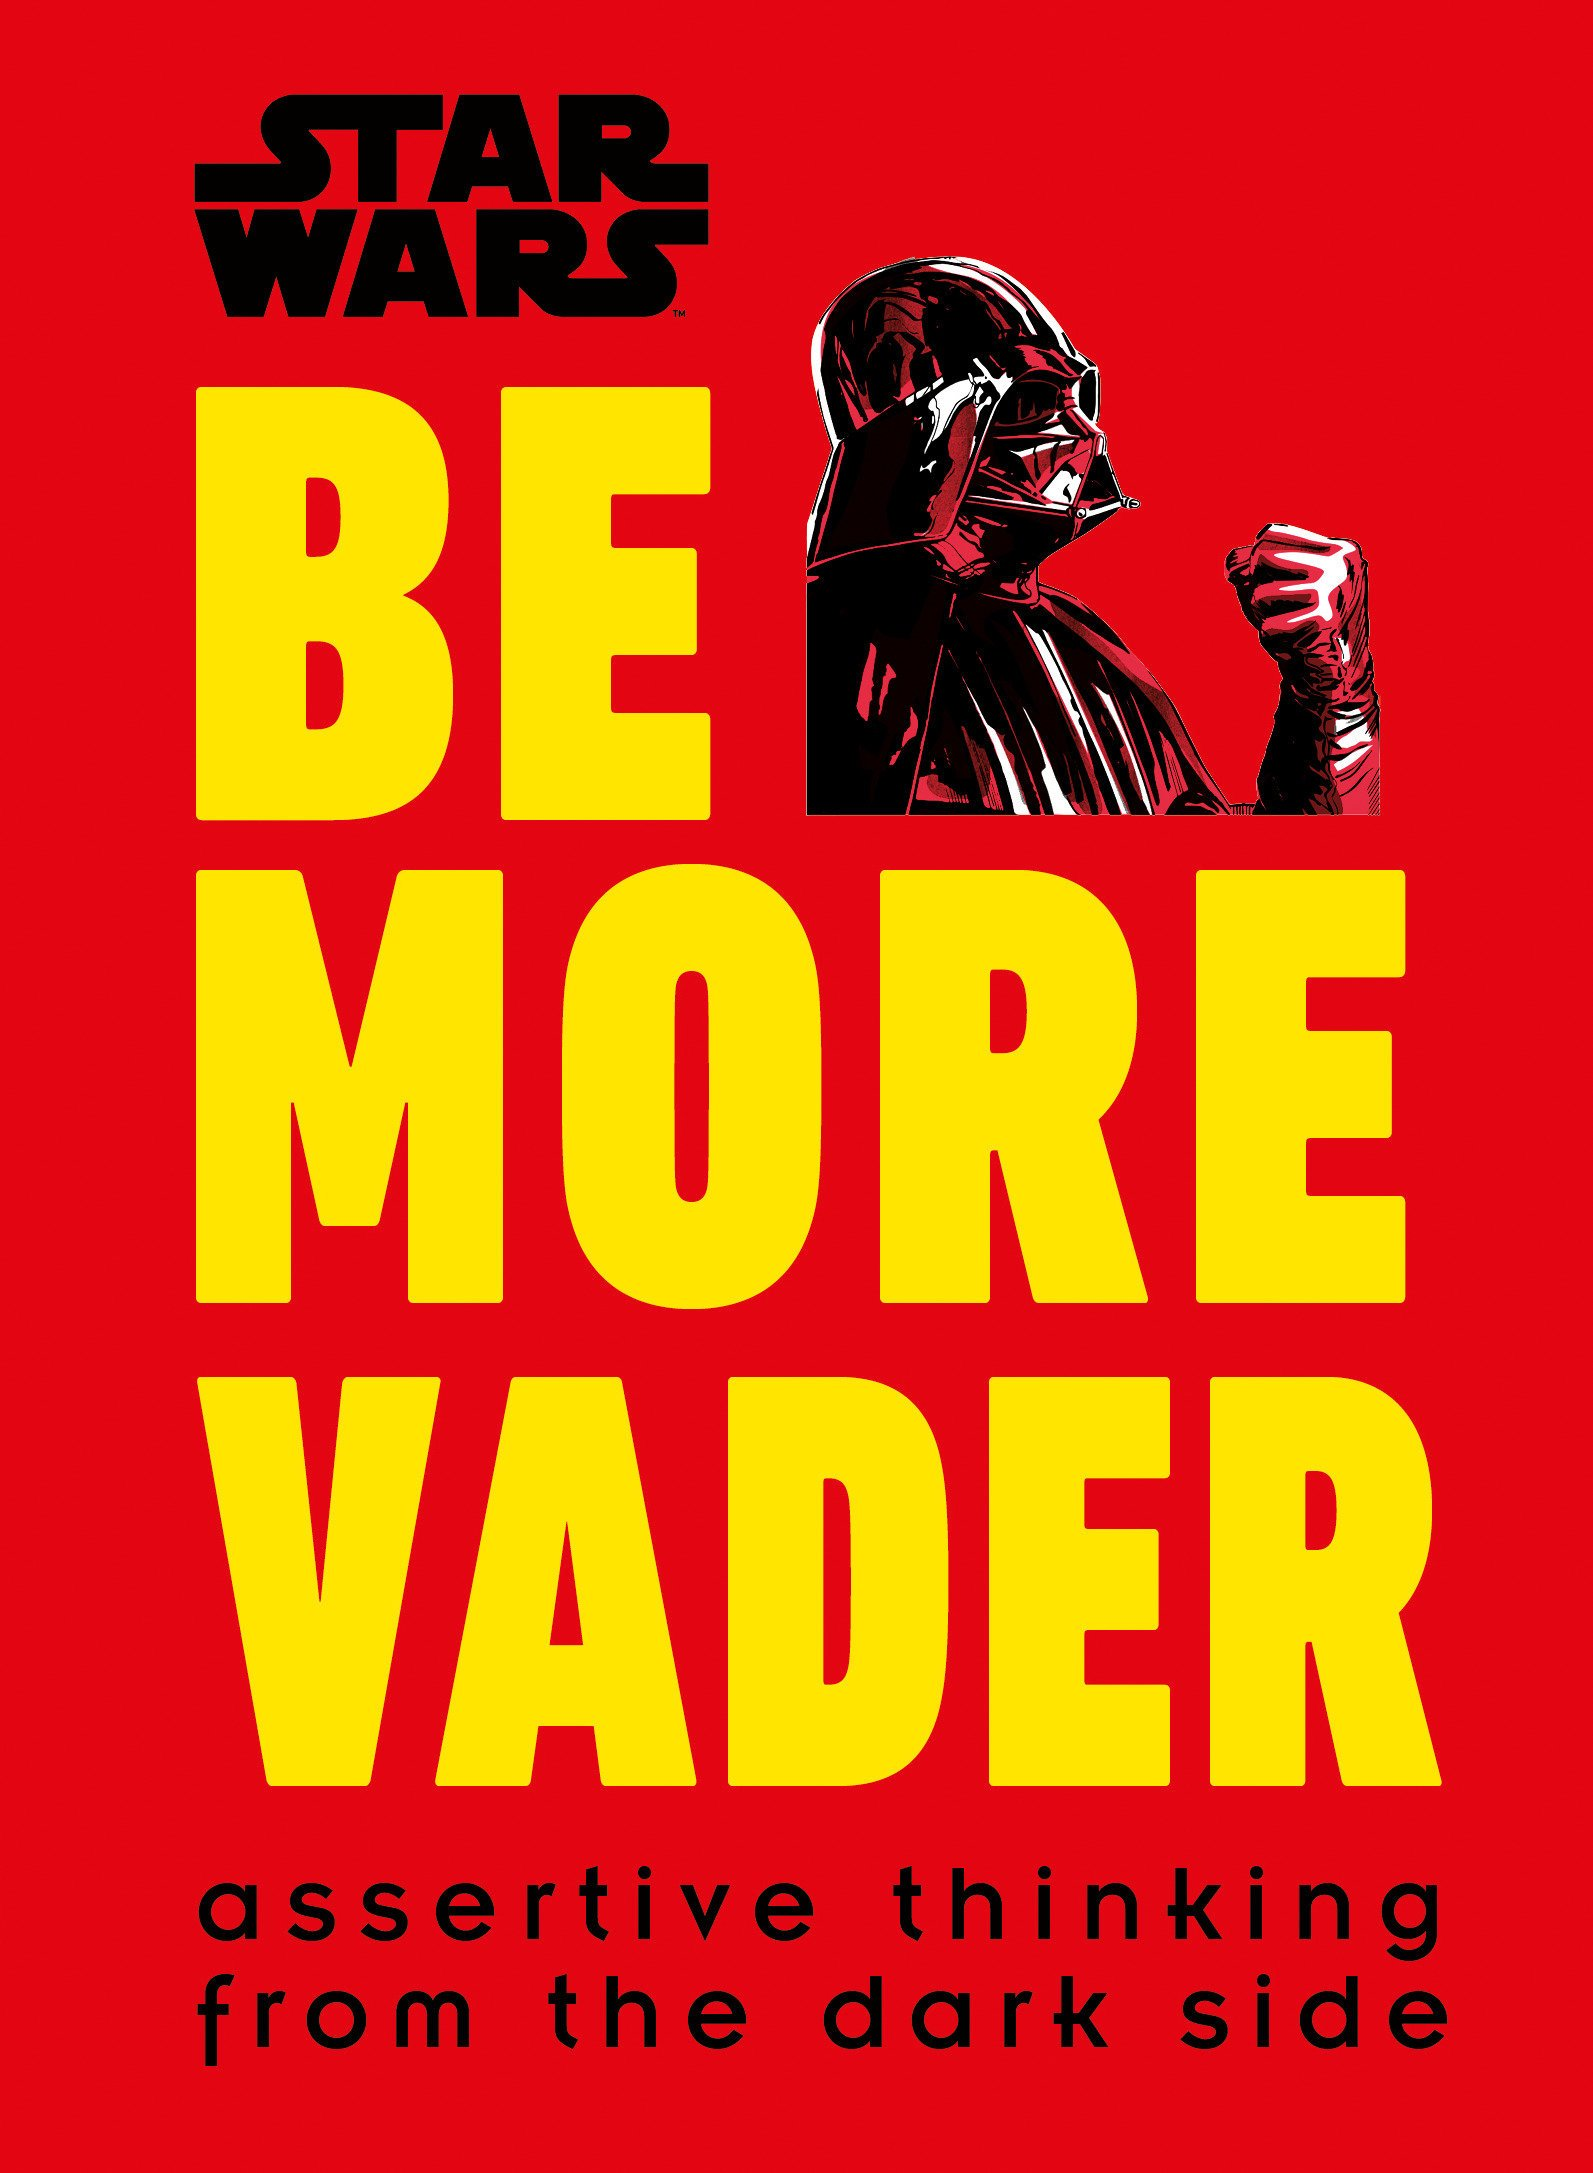 Star Wars: Be More Vader